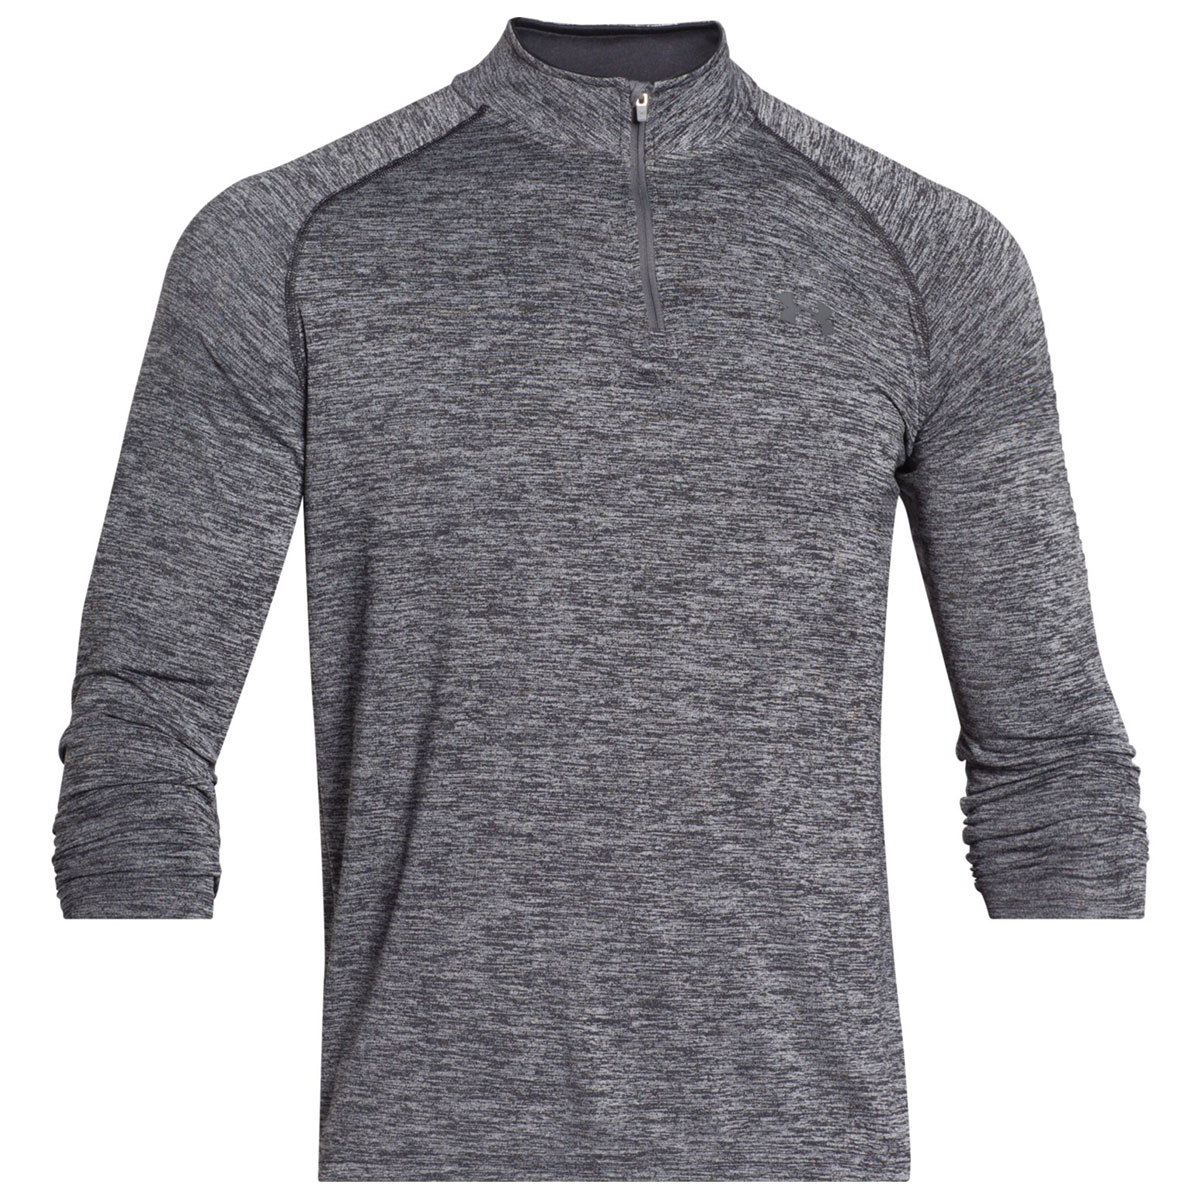 Under-Armour-Mens-UA-Tech-1-4-Zip-Long-Sleeve-Top-Workout-Layer-27-OFF-RRP thumbnail 20